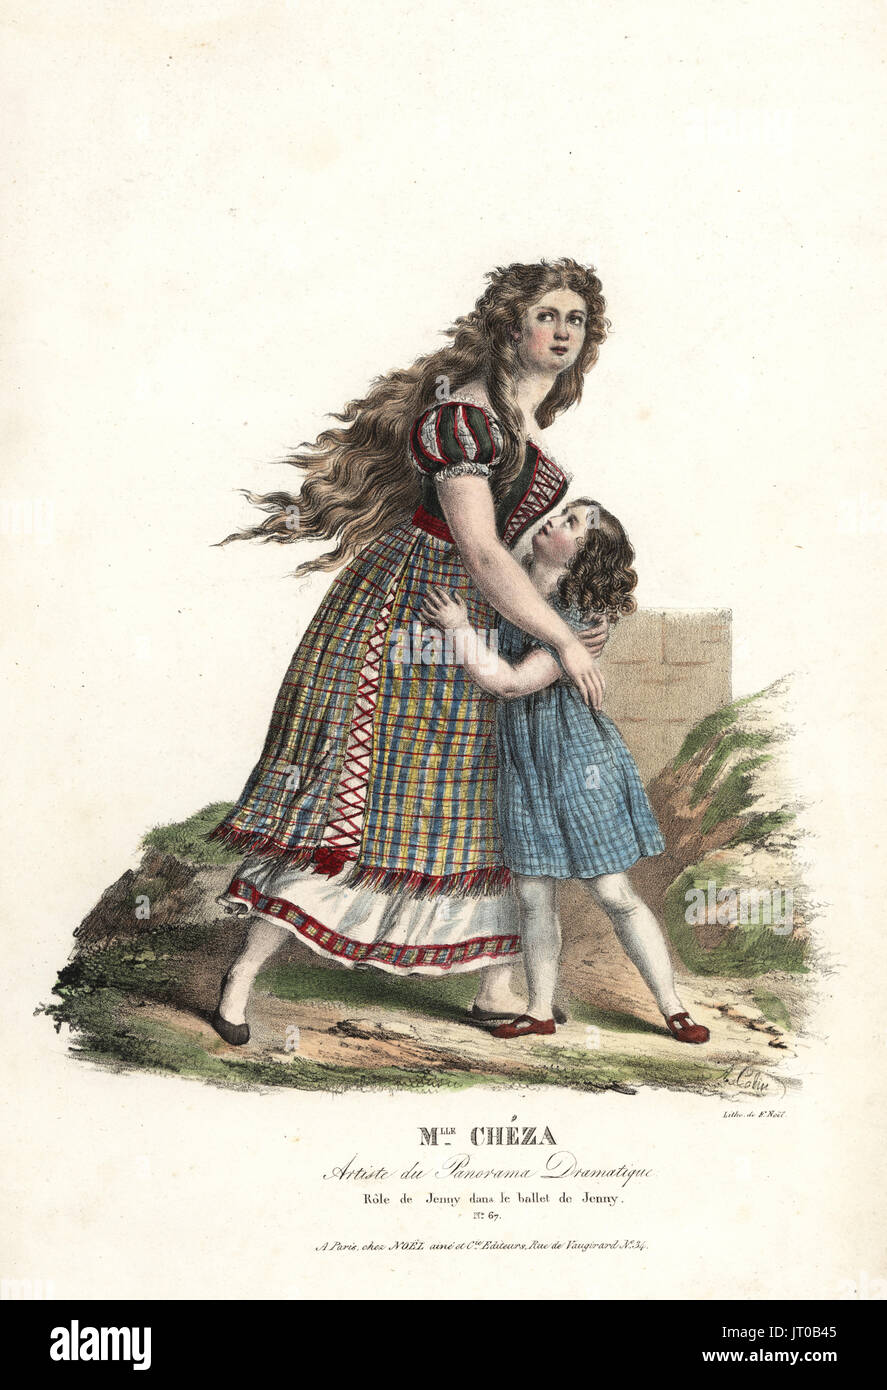 Ballerina Mlle Marie Cheza as Jenny in the ballet-pantomime Jenny by Jean-Louis Aumer, Panorama Dramatique, 1824. Handcoloured lithograph by F. Noel after an illustration by Alexandre-Marie Colin from Portraits d'Acteurs et d'Actrices dans different roles, F. Noel, Paris, 1825. - Stock Image